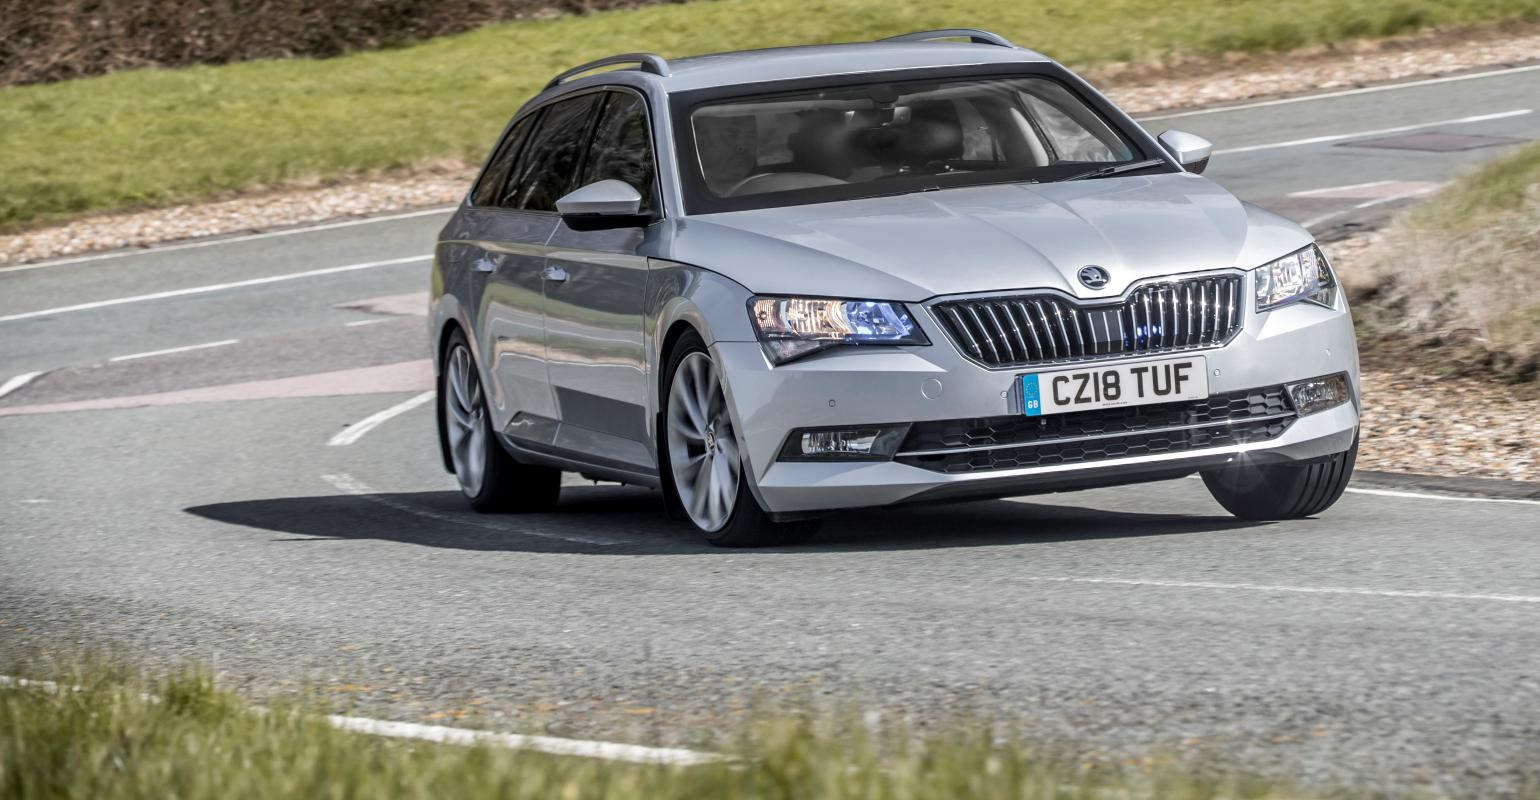 armored skoda superb estate  [ 1540 x 800 Pixel ]